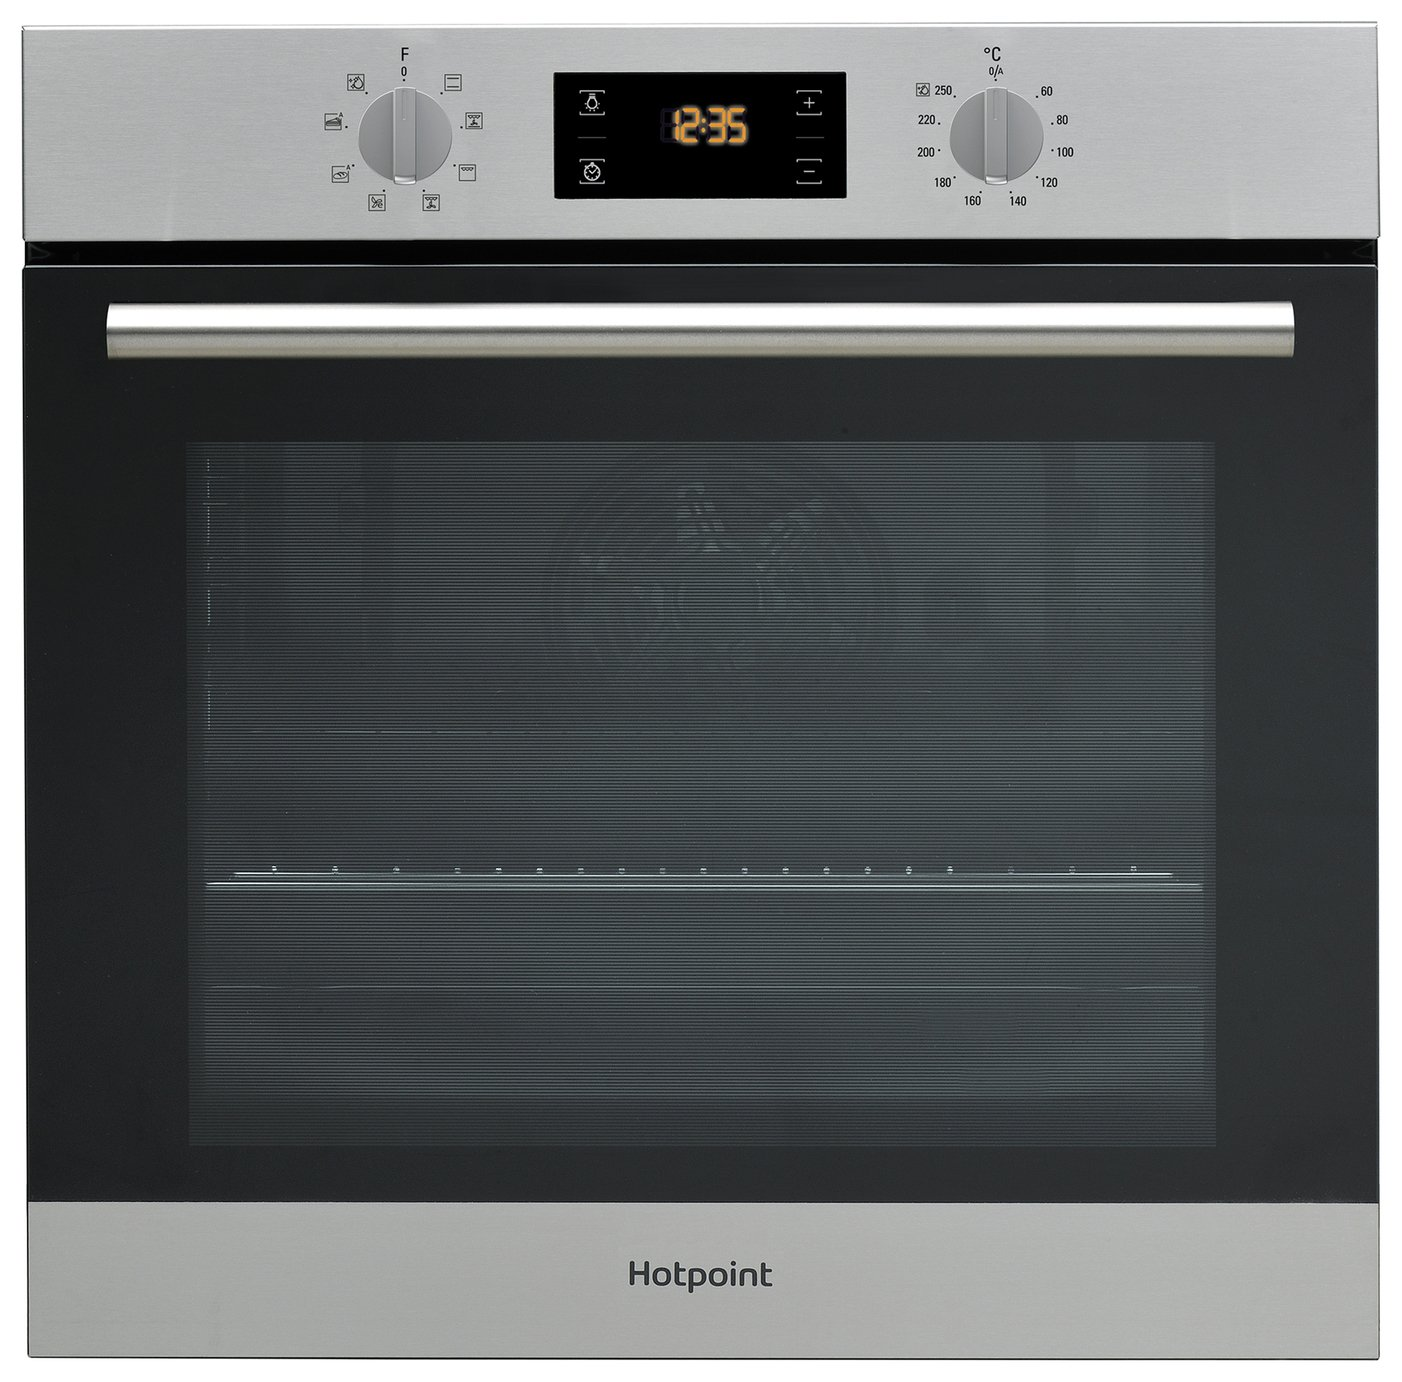 Hotpoint SA2540HIX Built-In Single Oven - Stainless Steel from Hotpoint